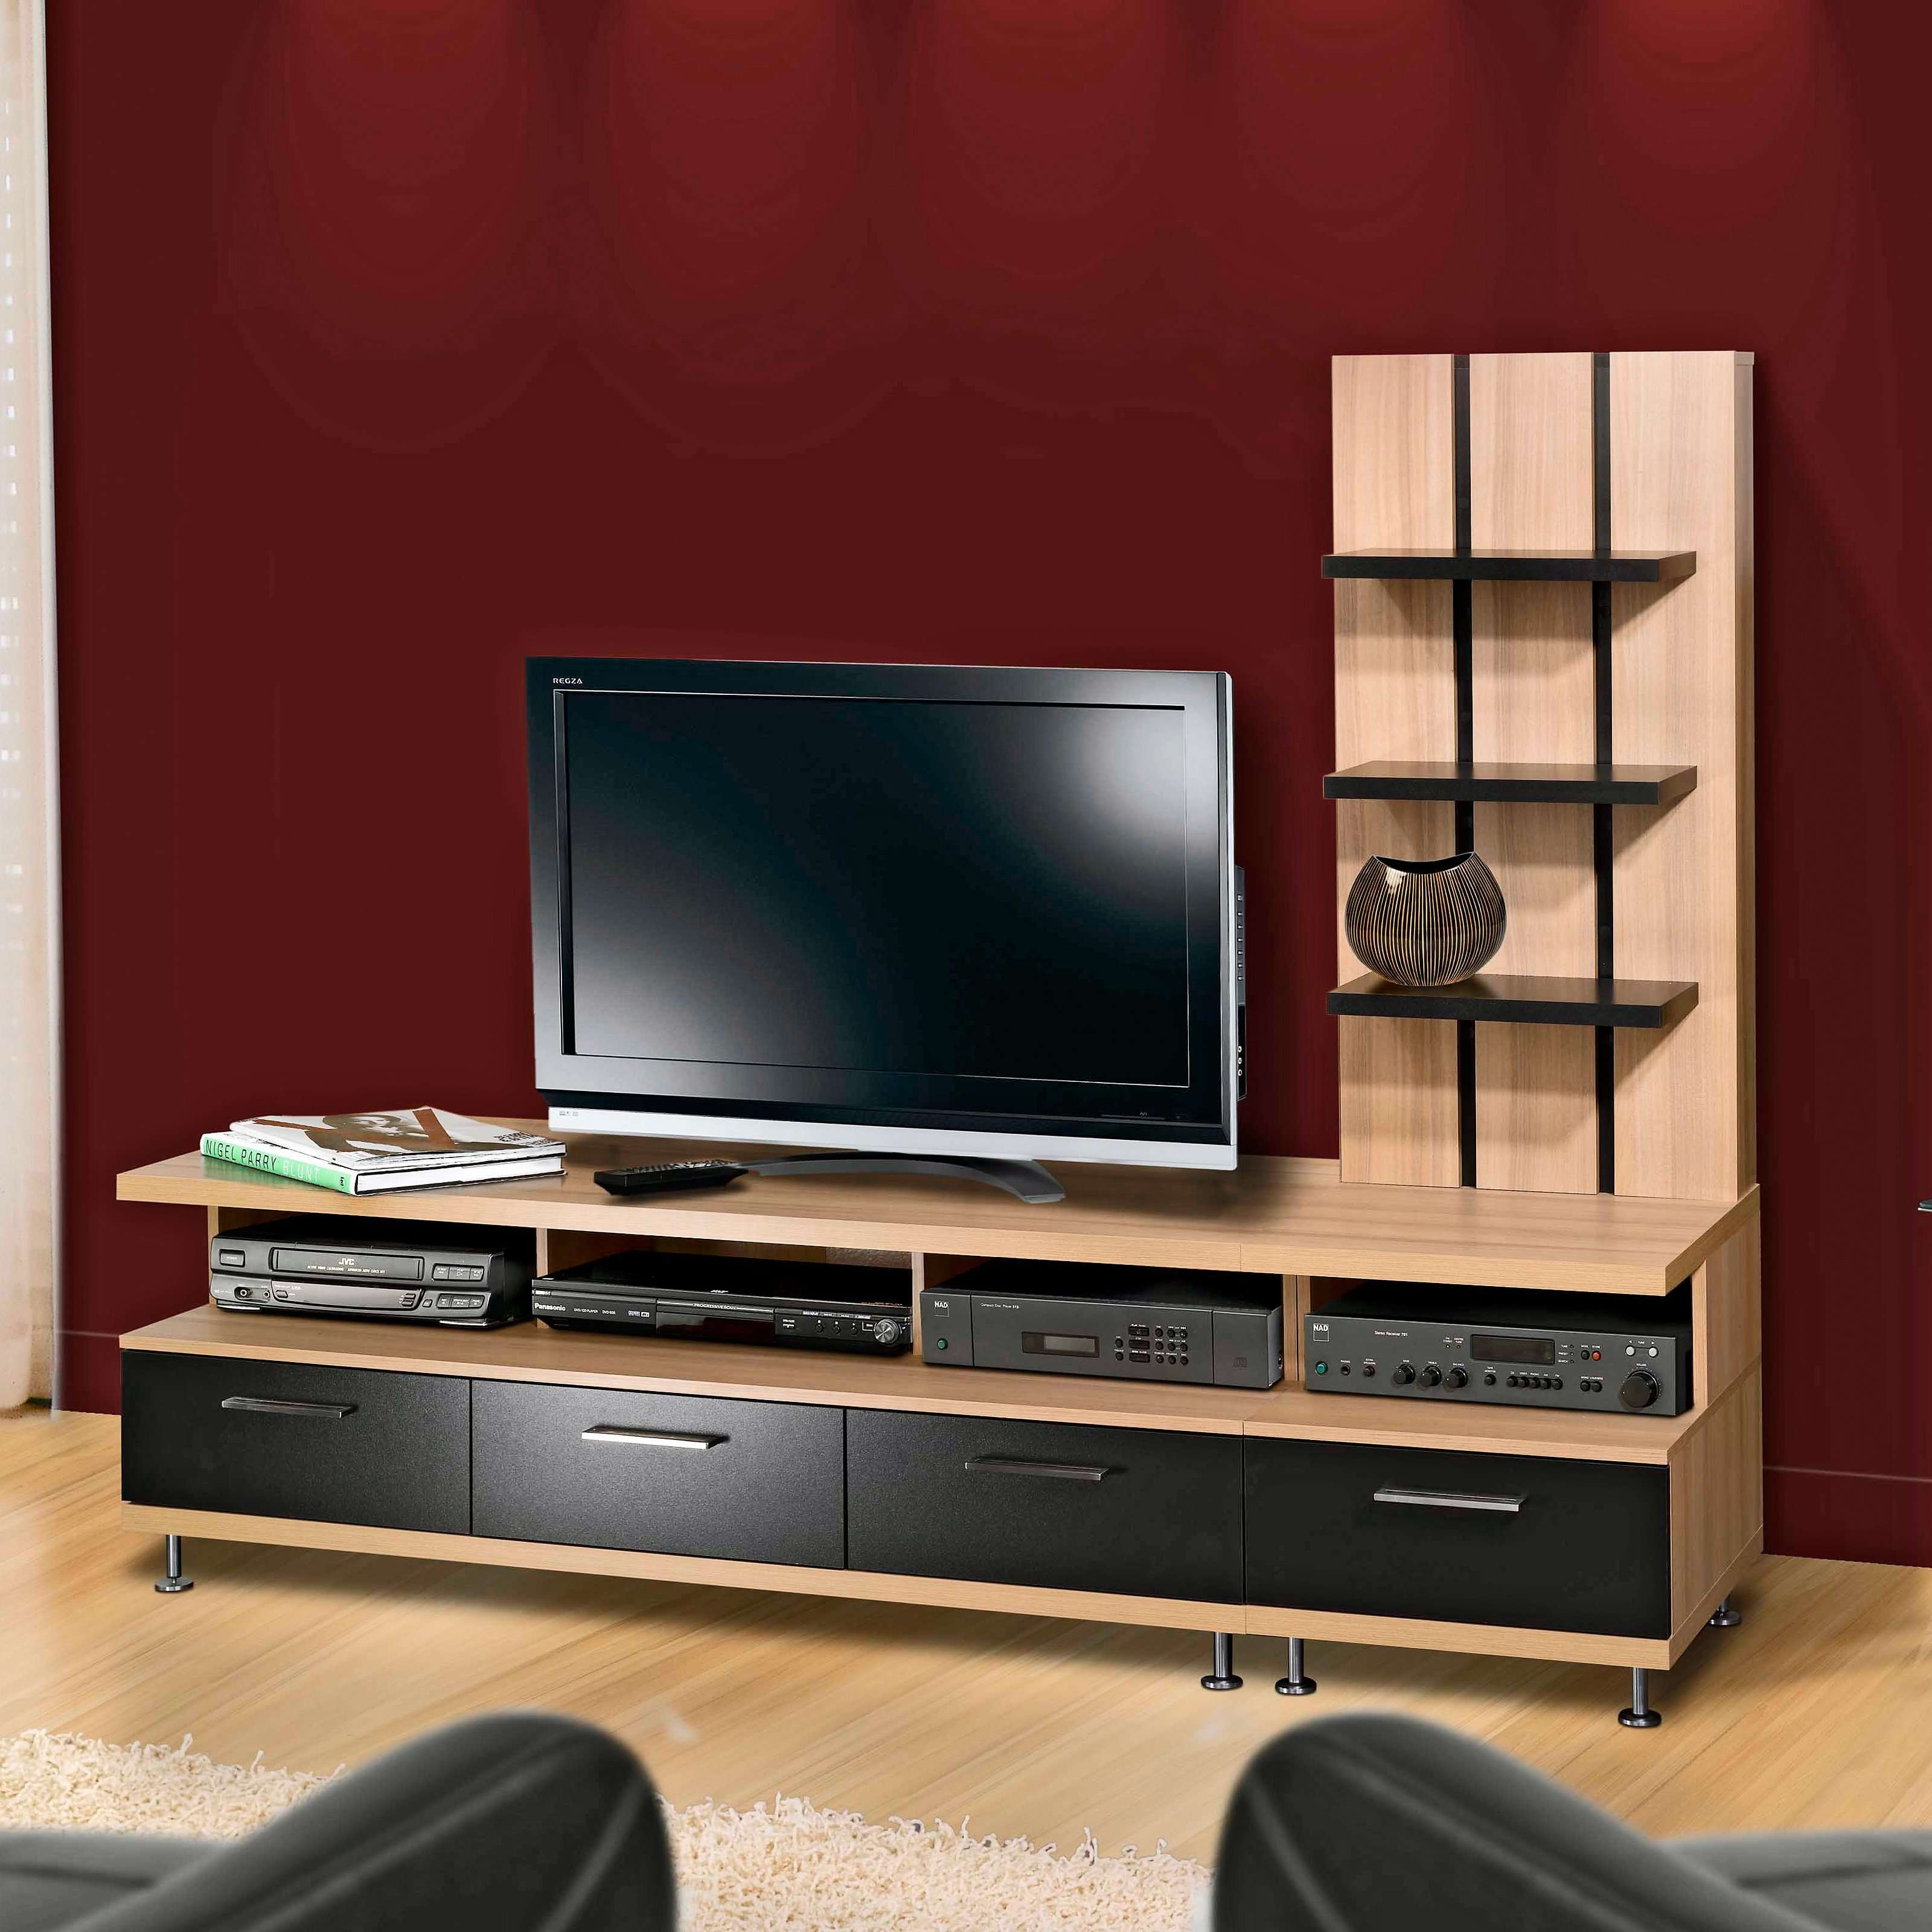 Unique Tv Stand With Drawers And Shelves 92 For Home Improvement With Regard To Unique Tv Stands (View 11 of 20)